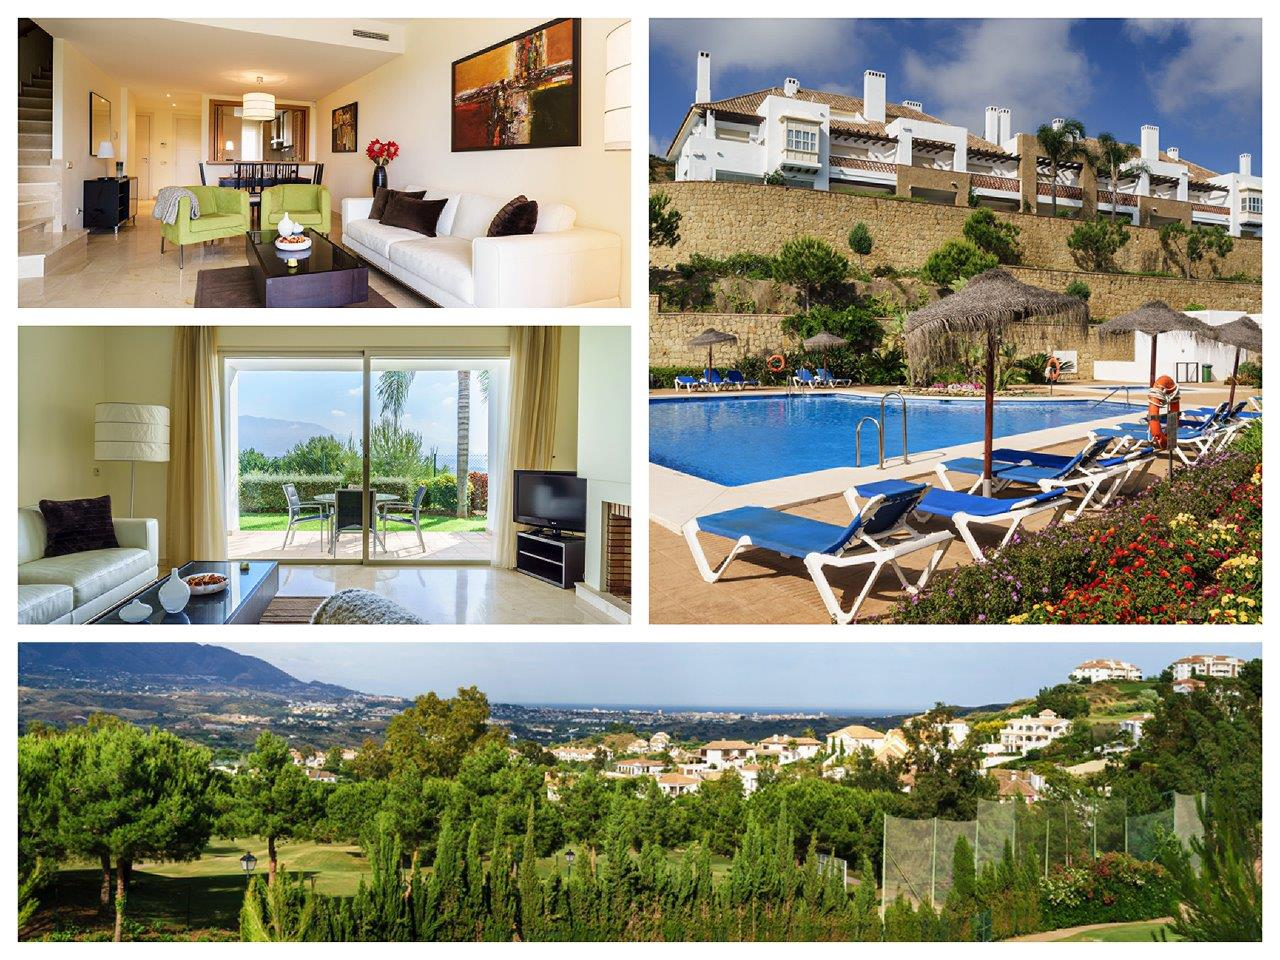 a2c2aba3e8 Townhouse in La Cala Golf (Mijas Costa) for sale - urbanization ...